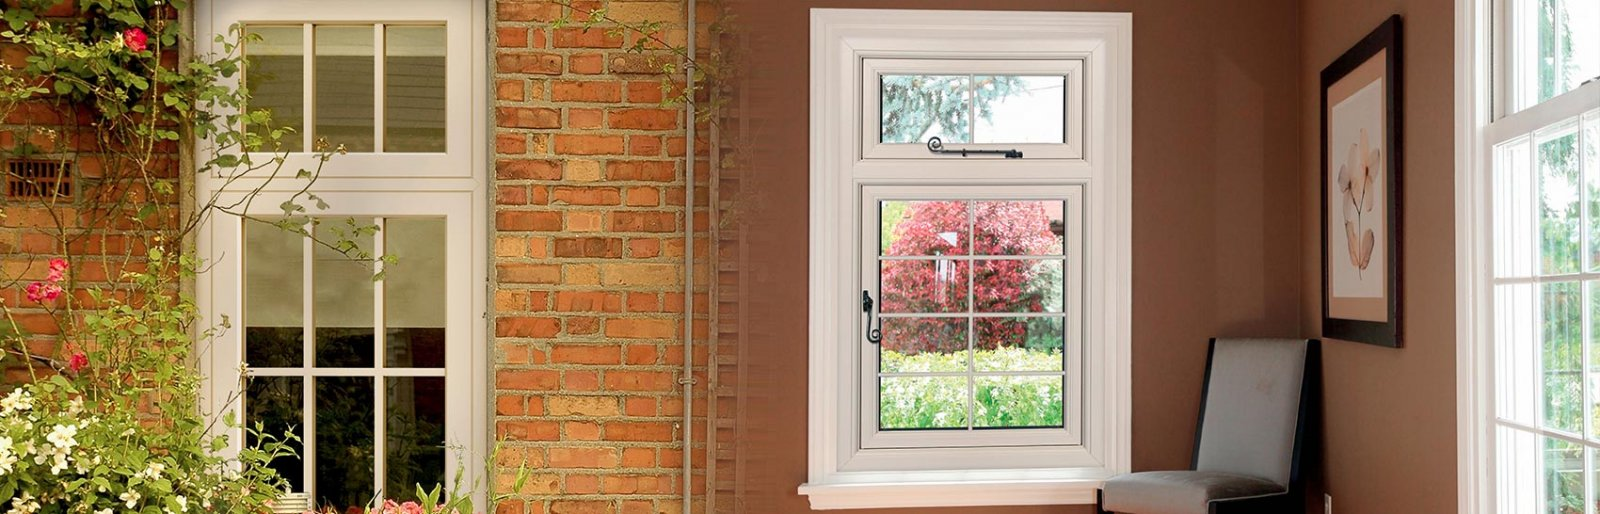 Low maintenance flush sash windows in bristol associated for Upvc french doors bristol